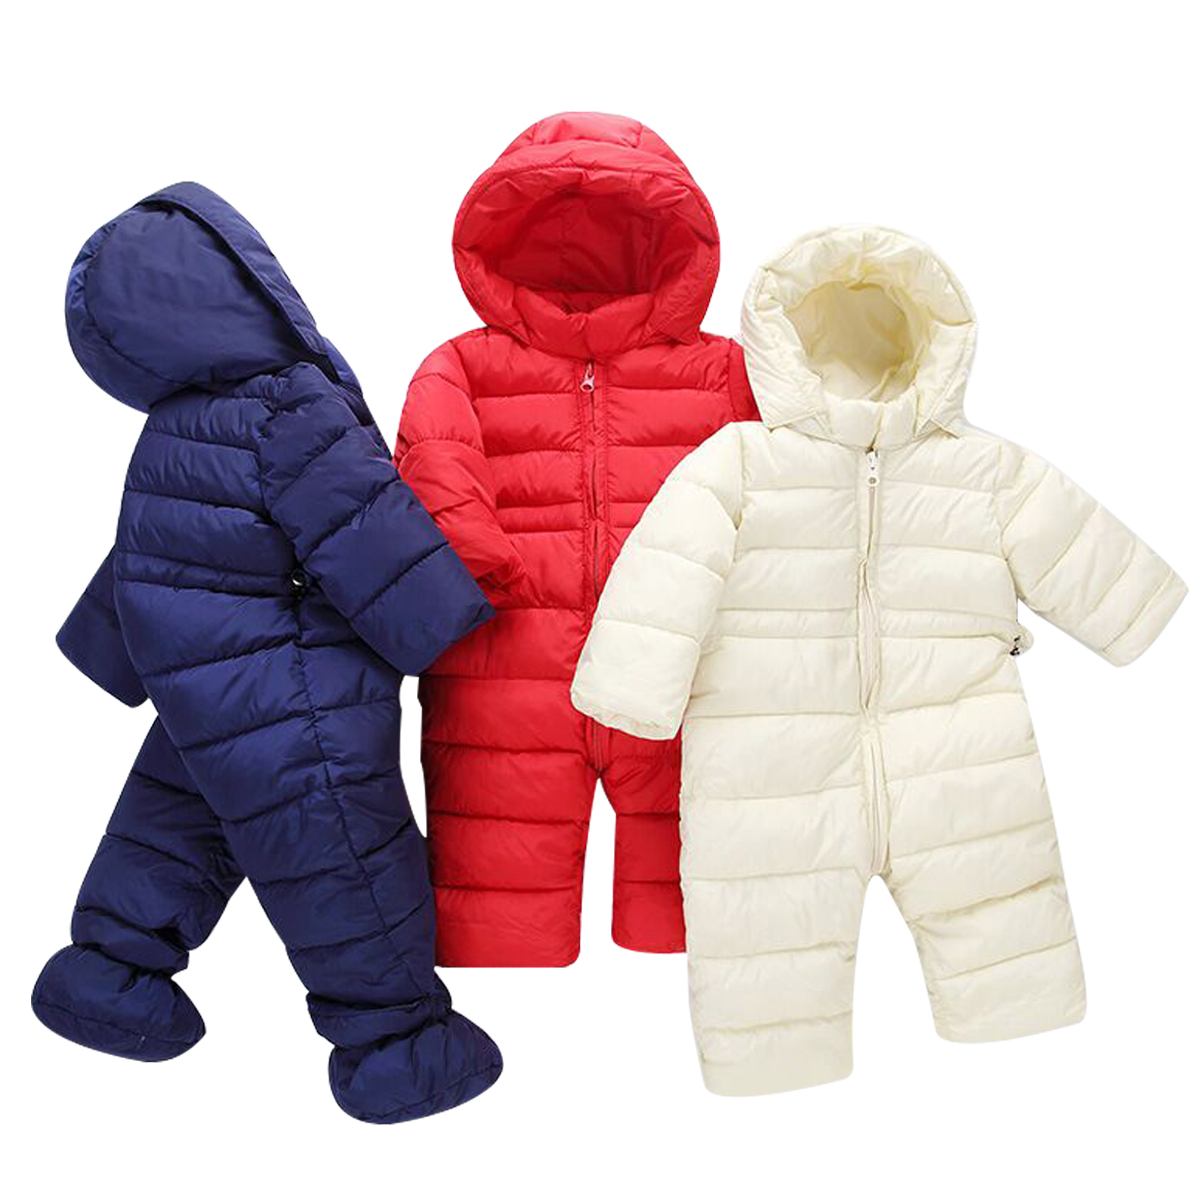 327cee695e0c Details about Newborn Winter Thick Snowsuit Baby Boys Girls Outwear Romper  Warm Down Jumpsuits